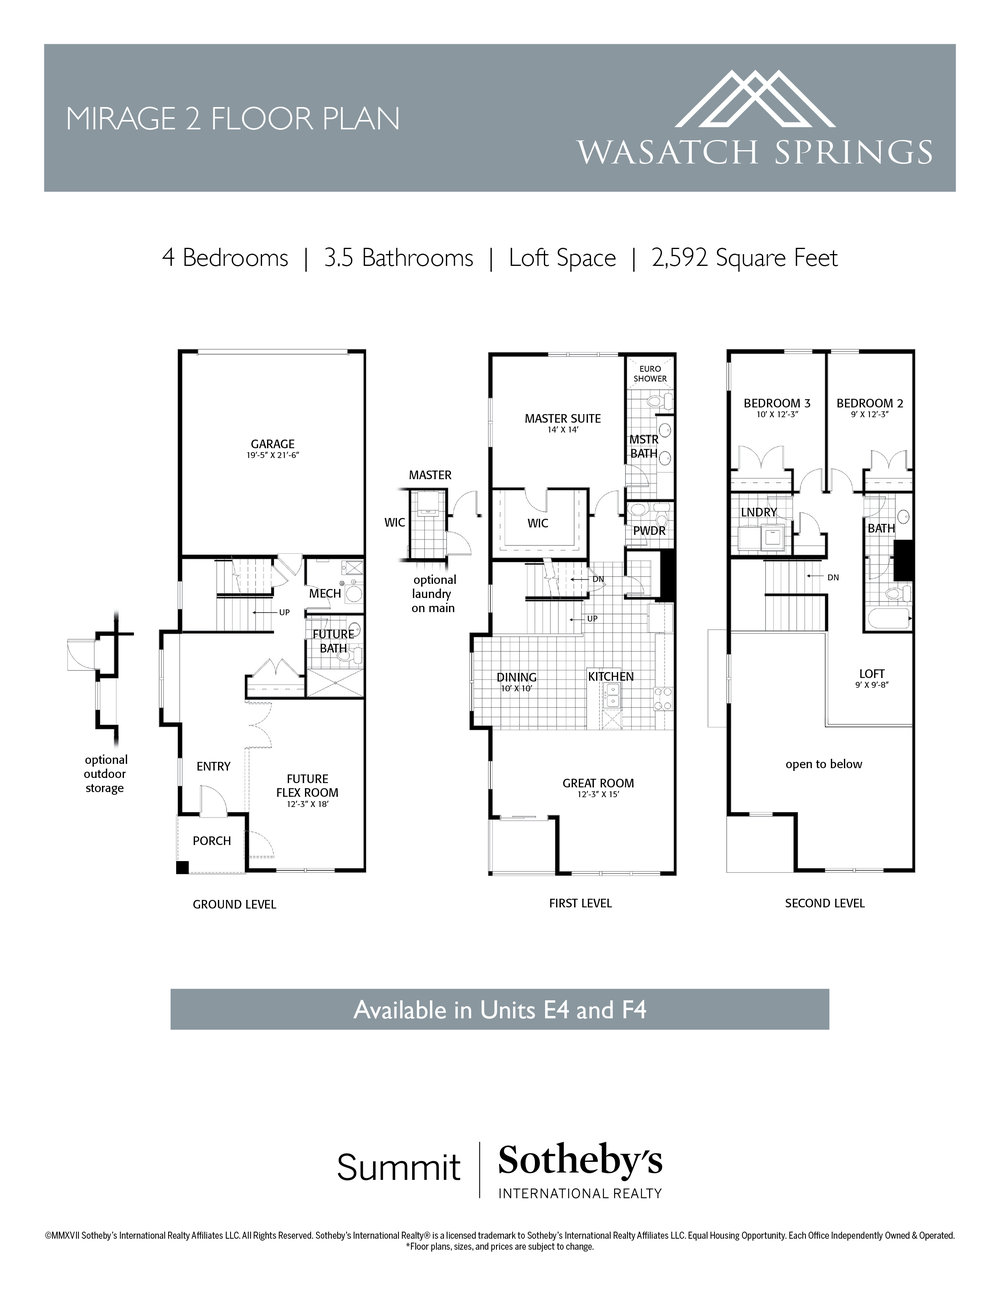 Wasatch Springs Inserts - Mirage 2 Floorplan.jpg